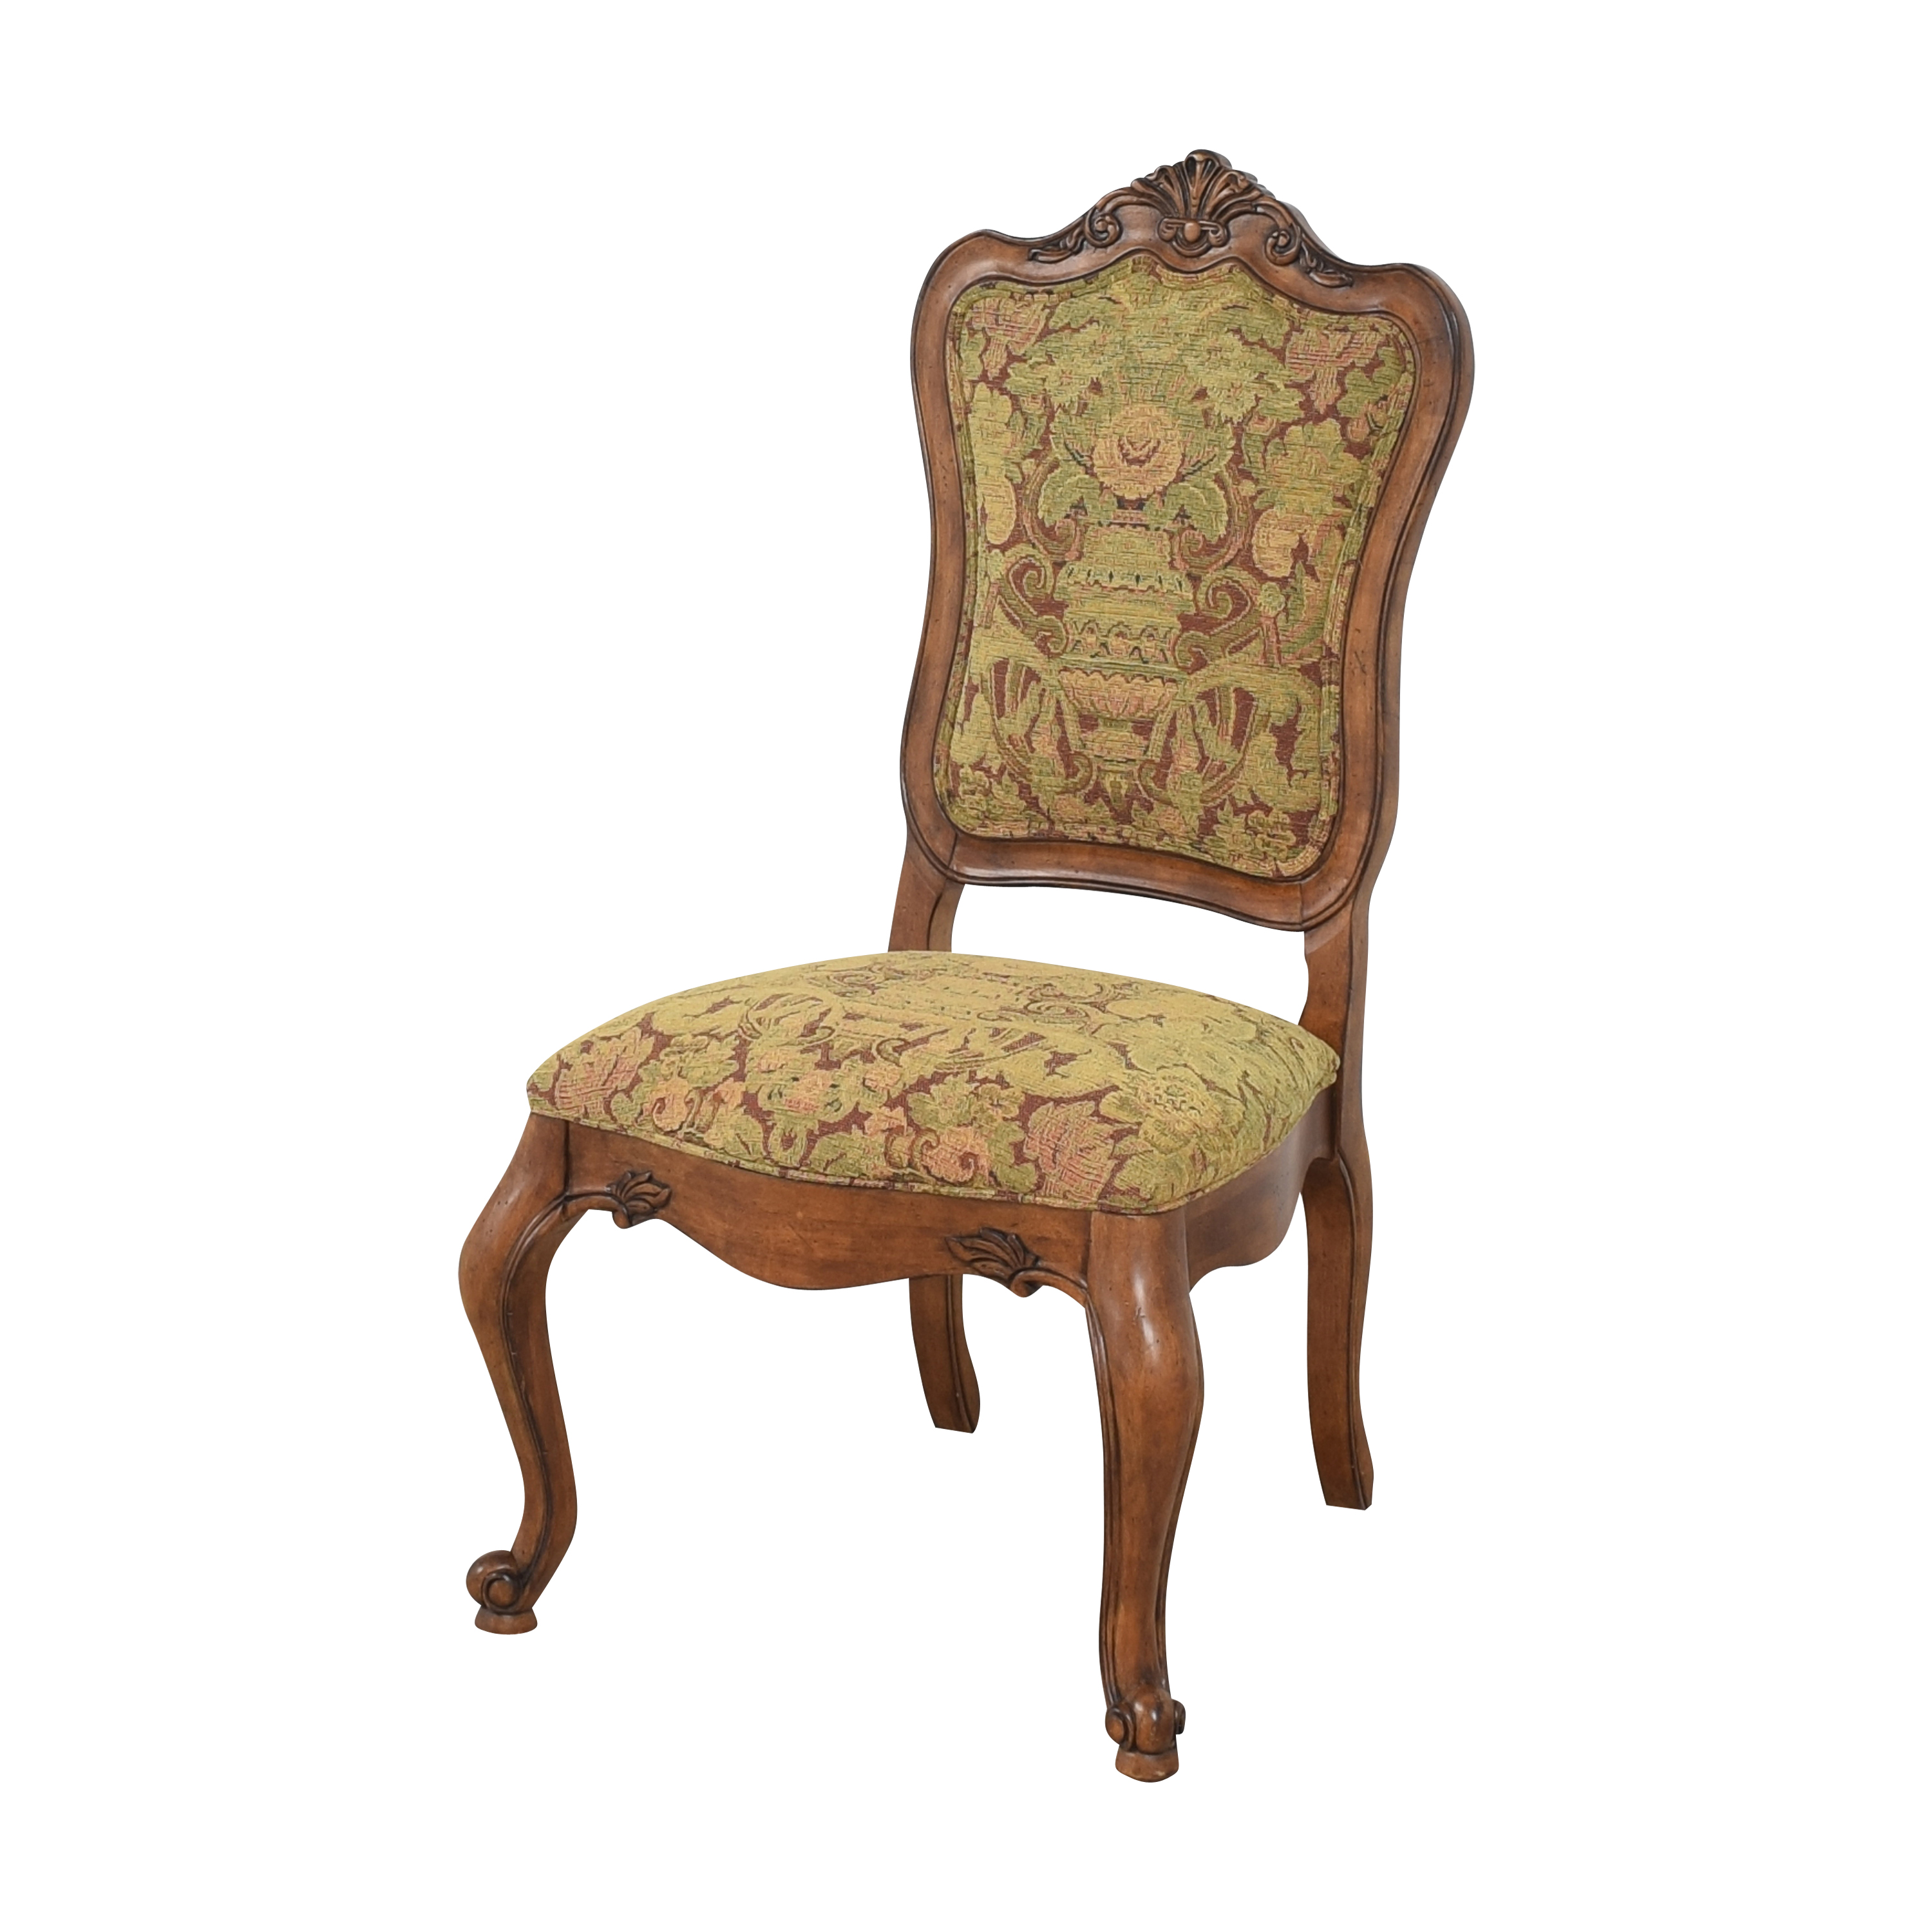 Ethan Allen Tuscany Upholstered Dining Chairs / Chairs